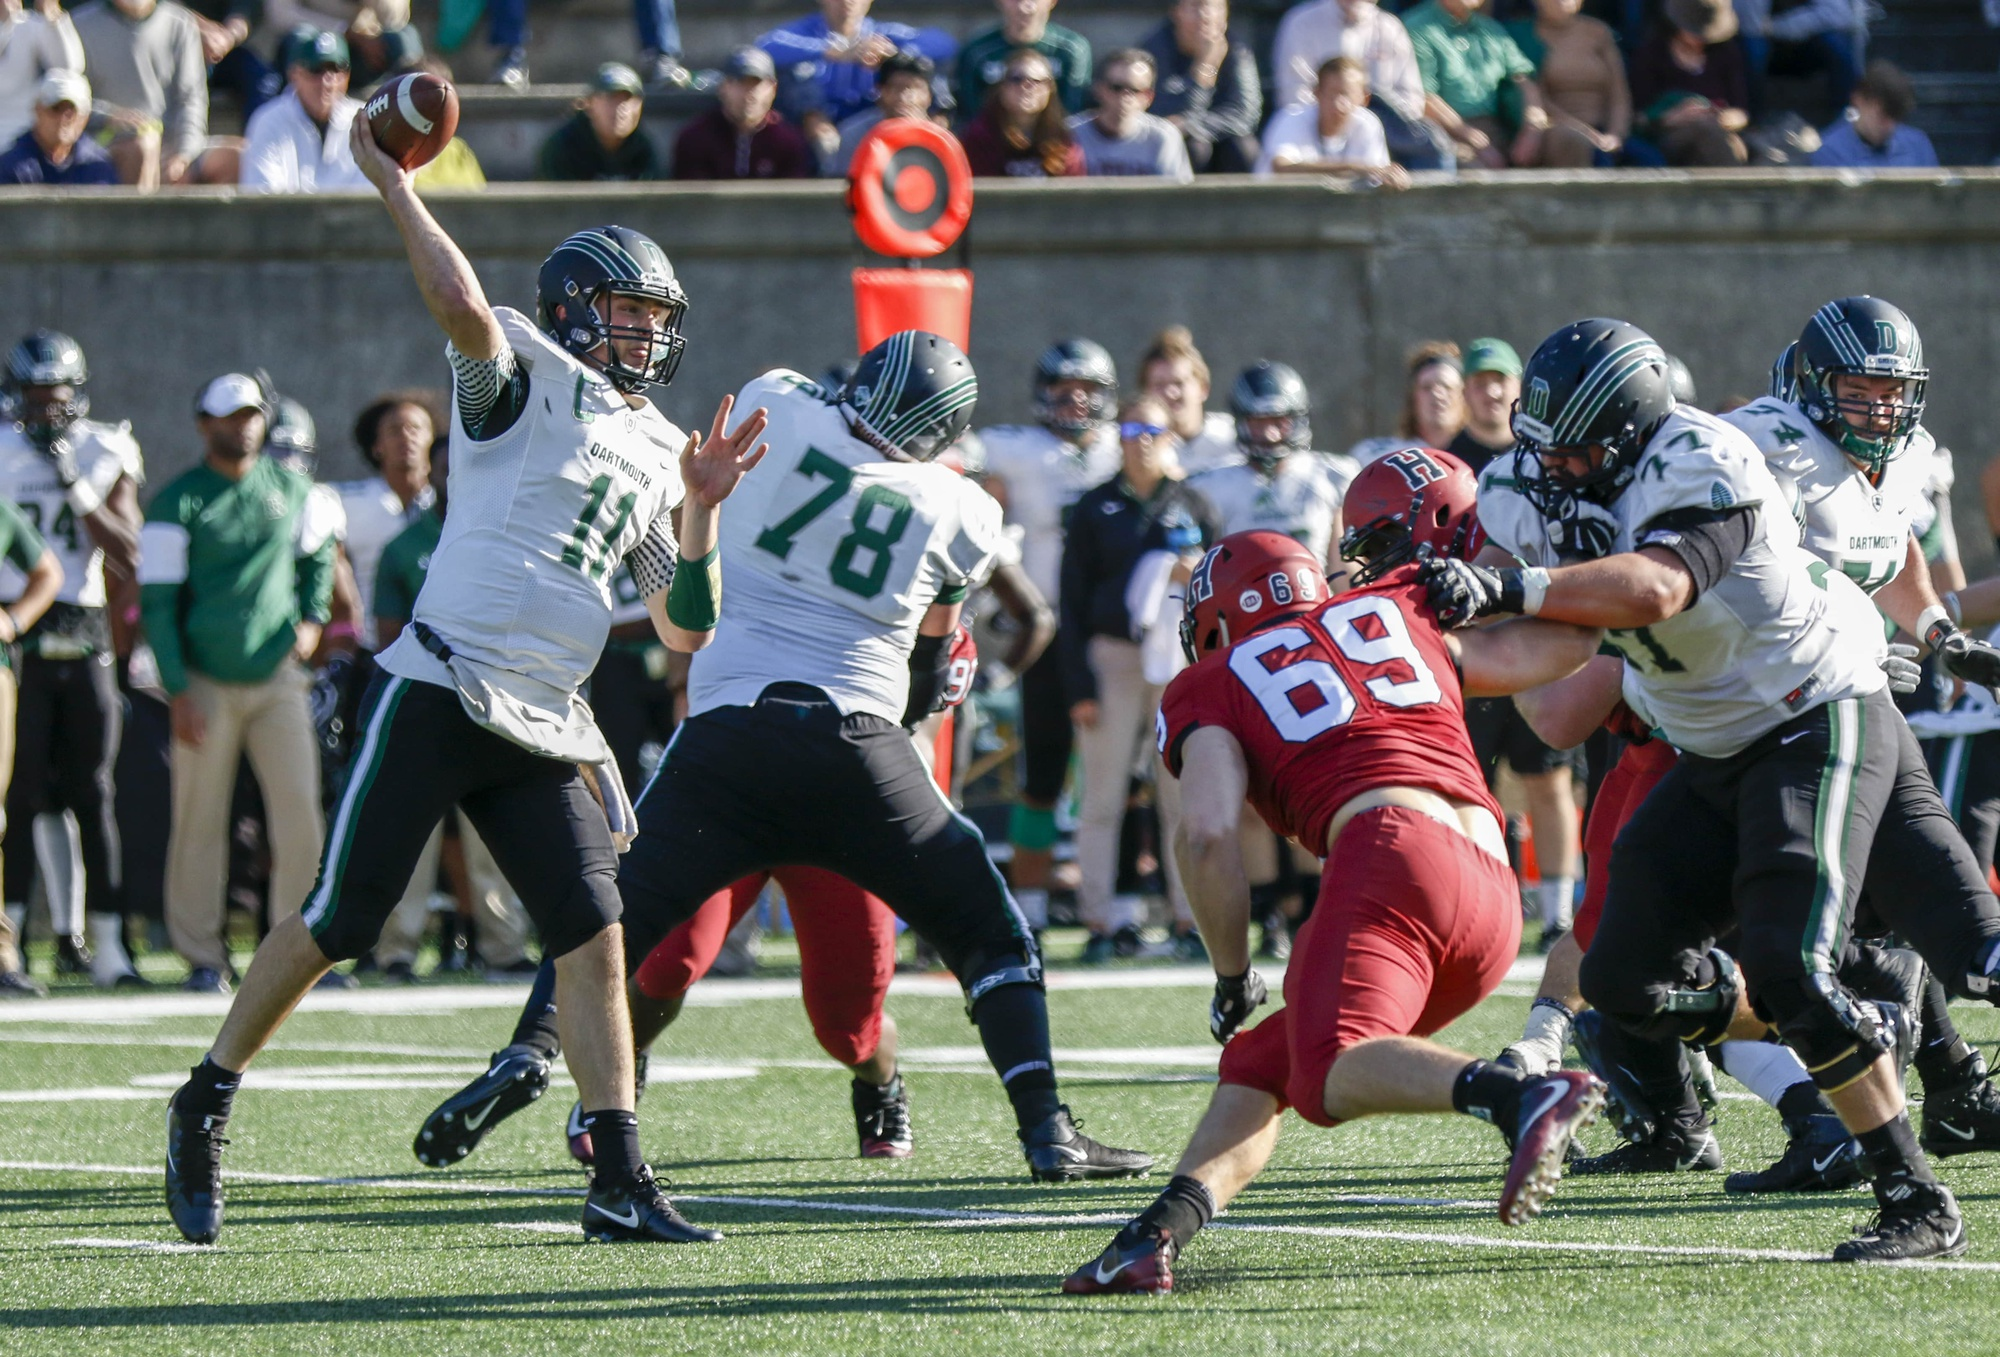 Dartmouth quarterback Jack Heneghan rears back for a throw against the Crimson.